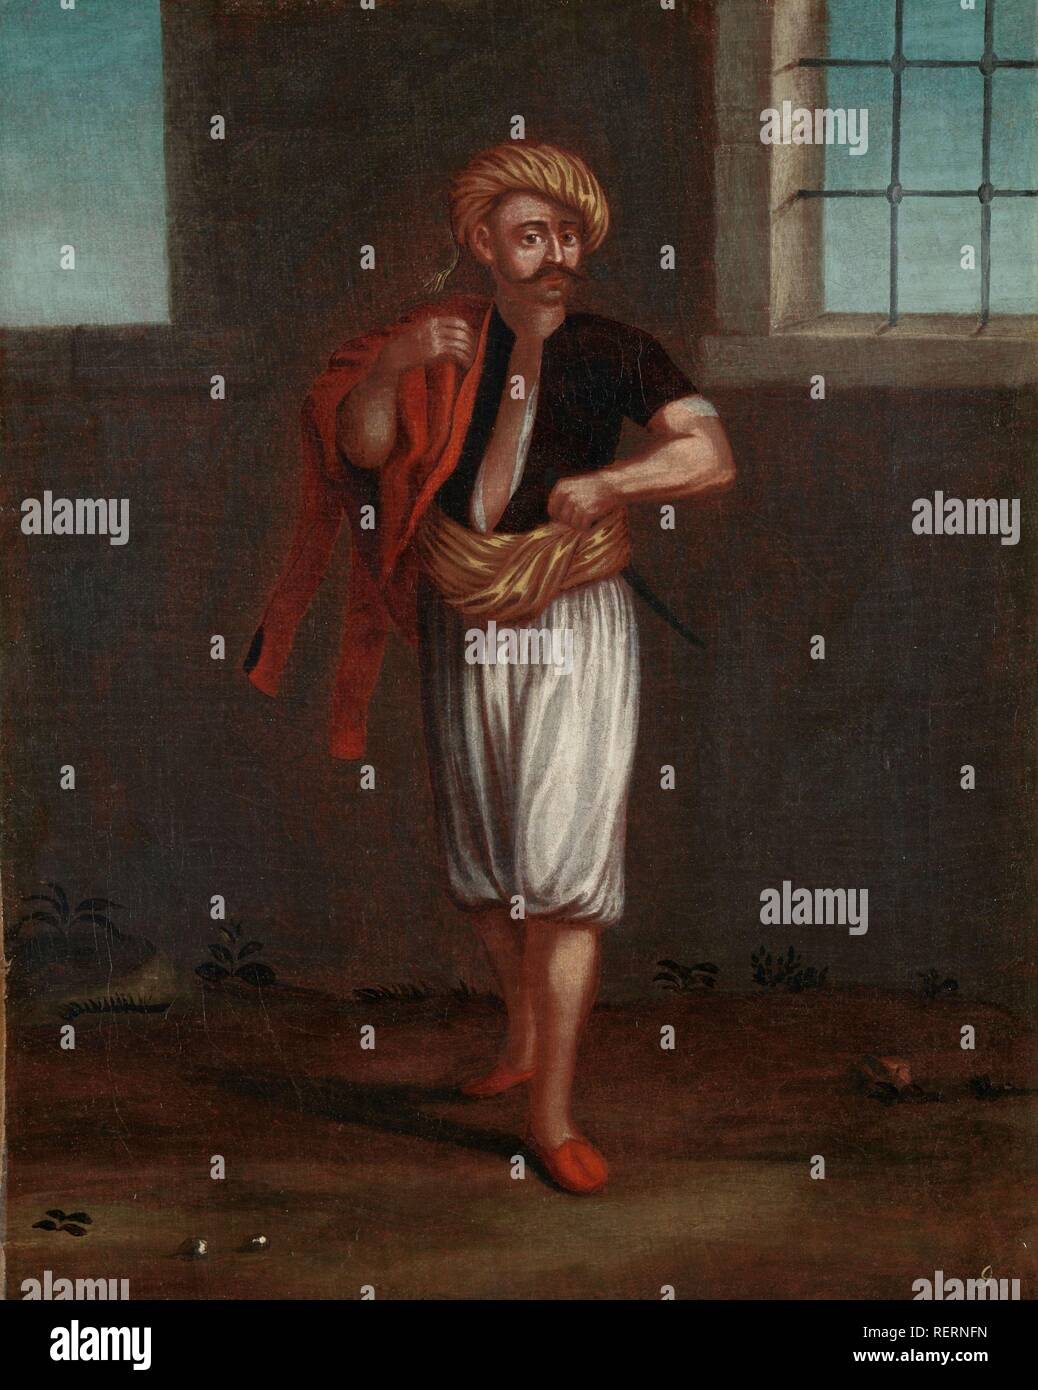 An Albanian Sailor. Dating: 1700 - 1737. Place: Istanbul. Measurements: h 39 cm × w 31 cm. Museum: Rijksmuseum, Amsterdam. Author: Jean Baptiste Vanmour (workshop of). - Stock Image